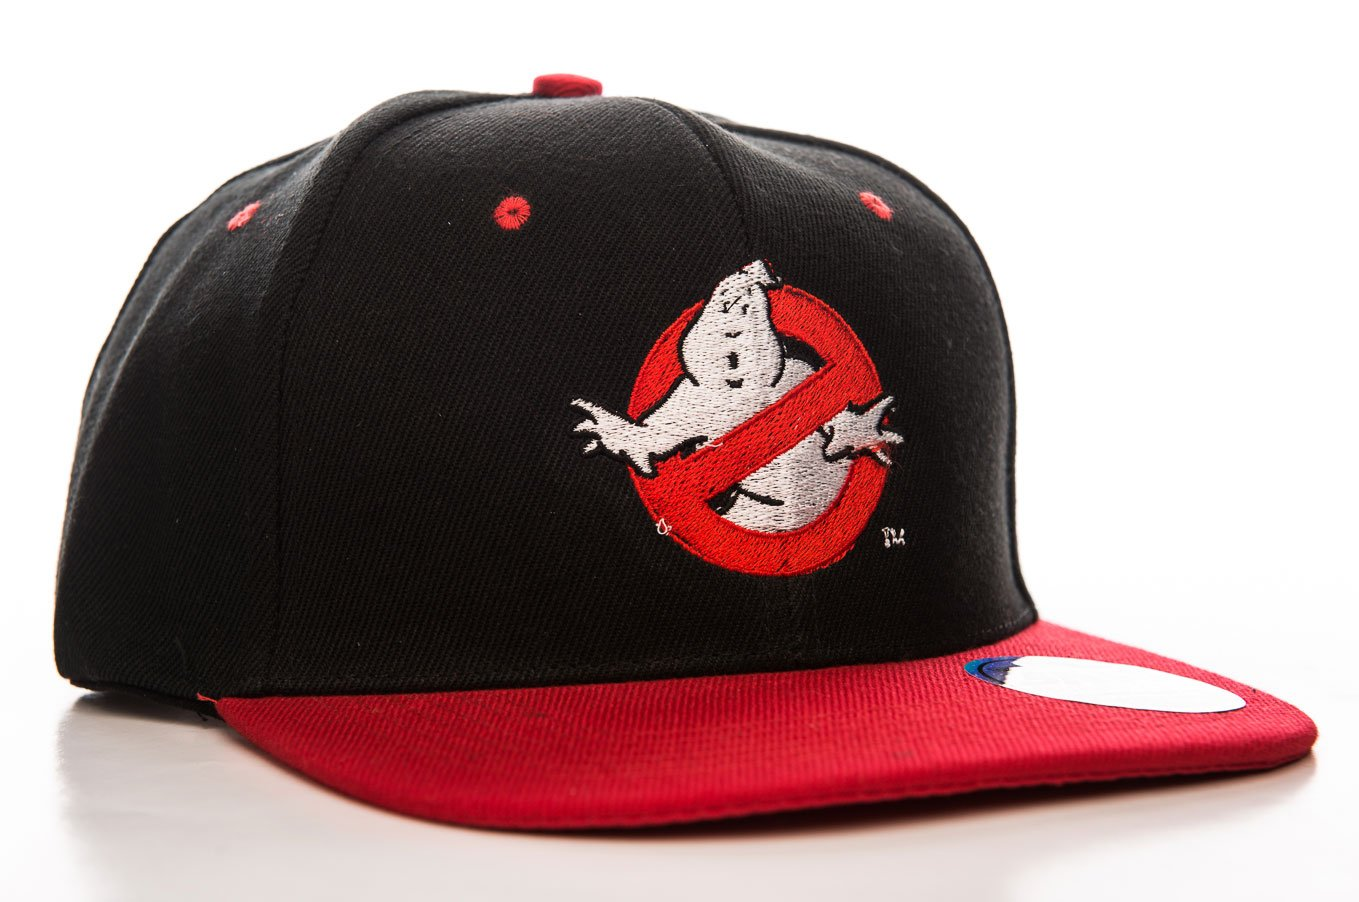 Official Ghostbusters No Ghost Logo Snapback Cap - Postees